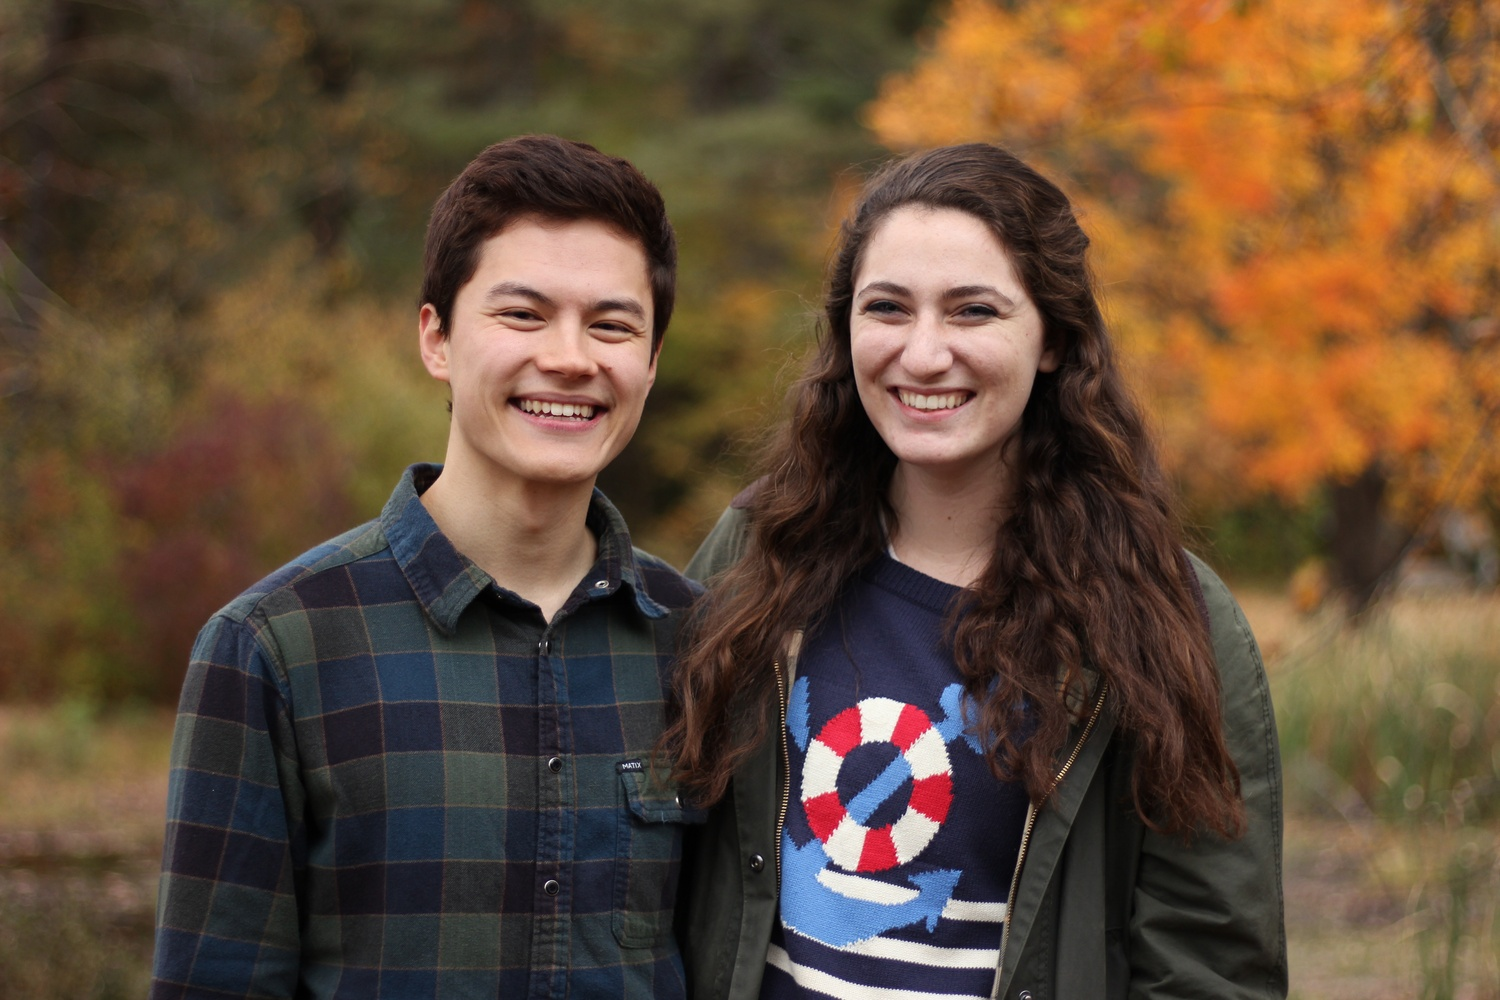 The College's Class of 2016's first marshal, Reylon A. Yount '16, and Second Marshal Jessica A. Barzilay '16 write a letter to the graduating senior class.